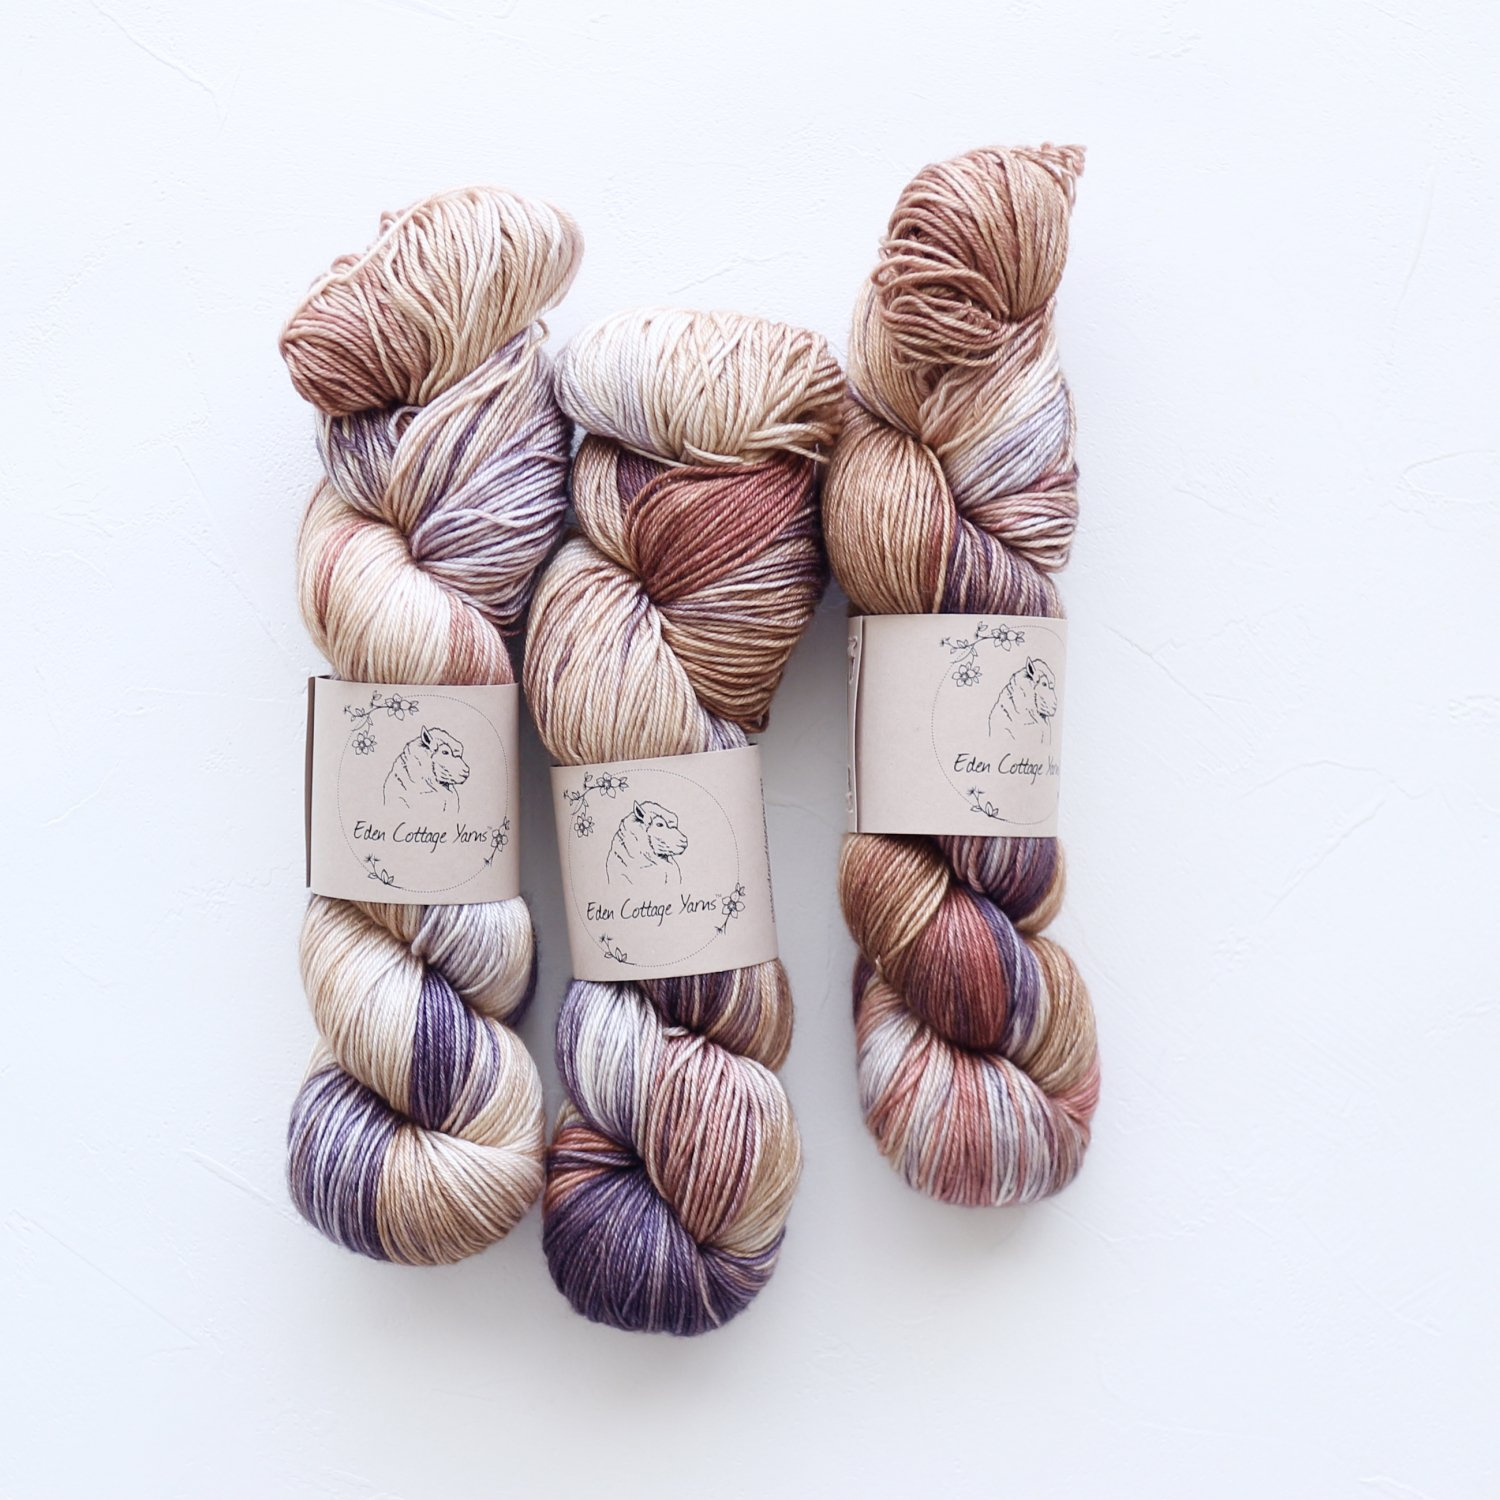 【Eden Cottage Yarns】<br>Titus 4ply<br>Woodpile